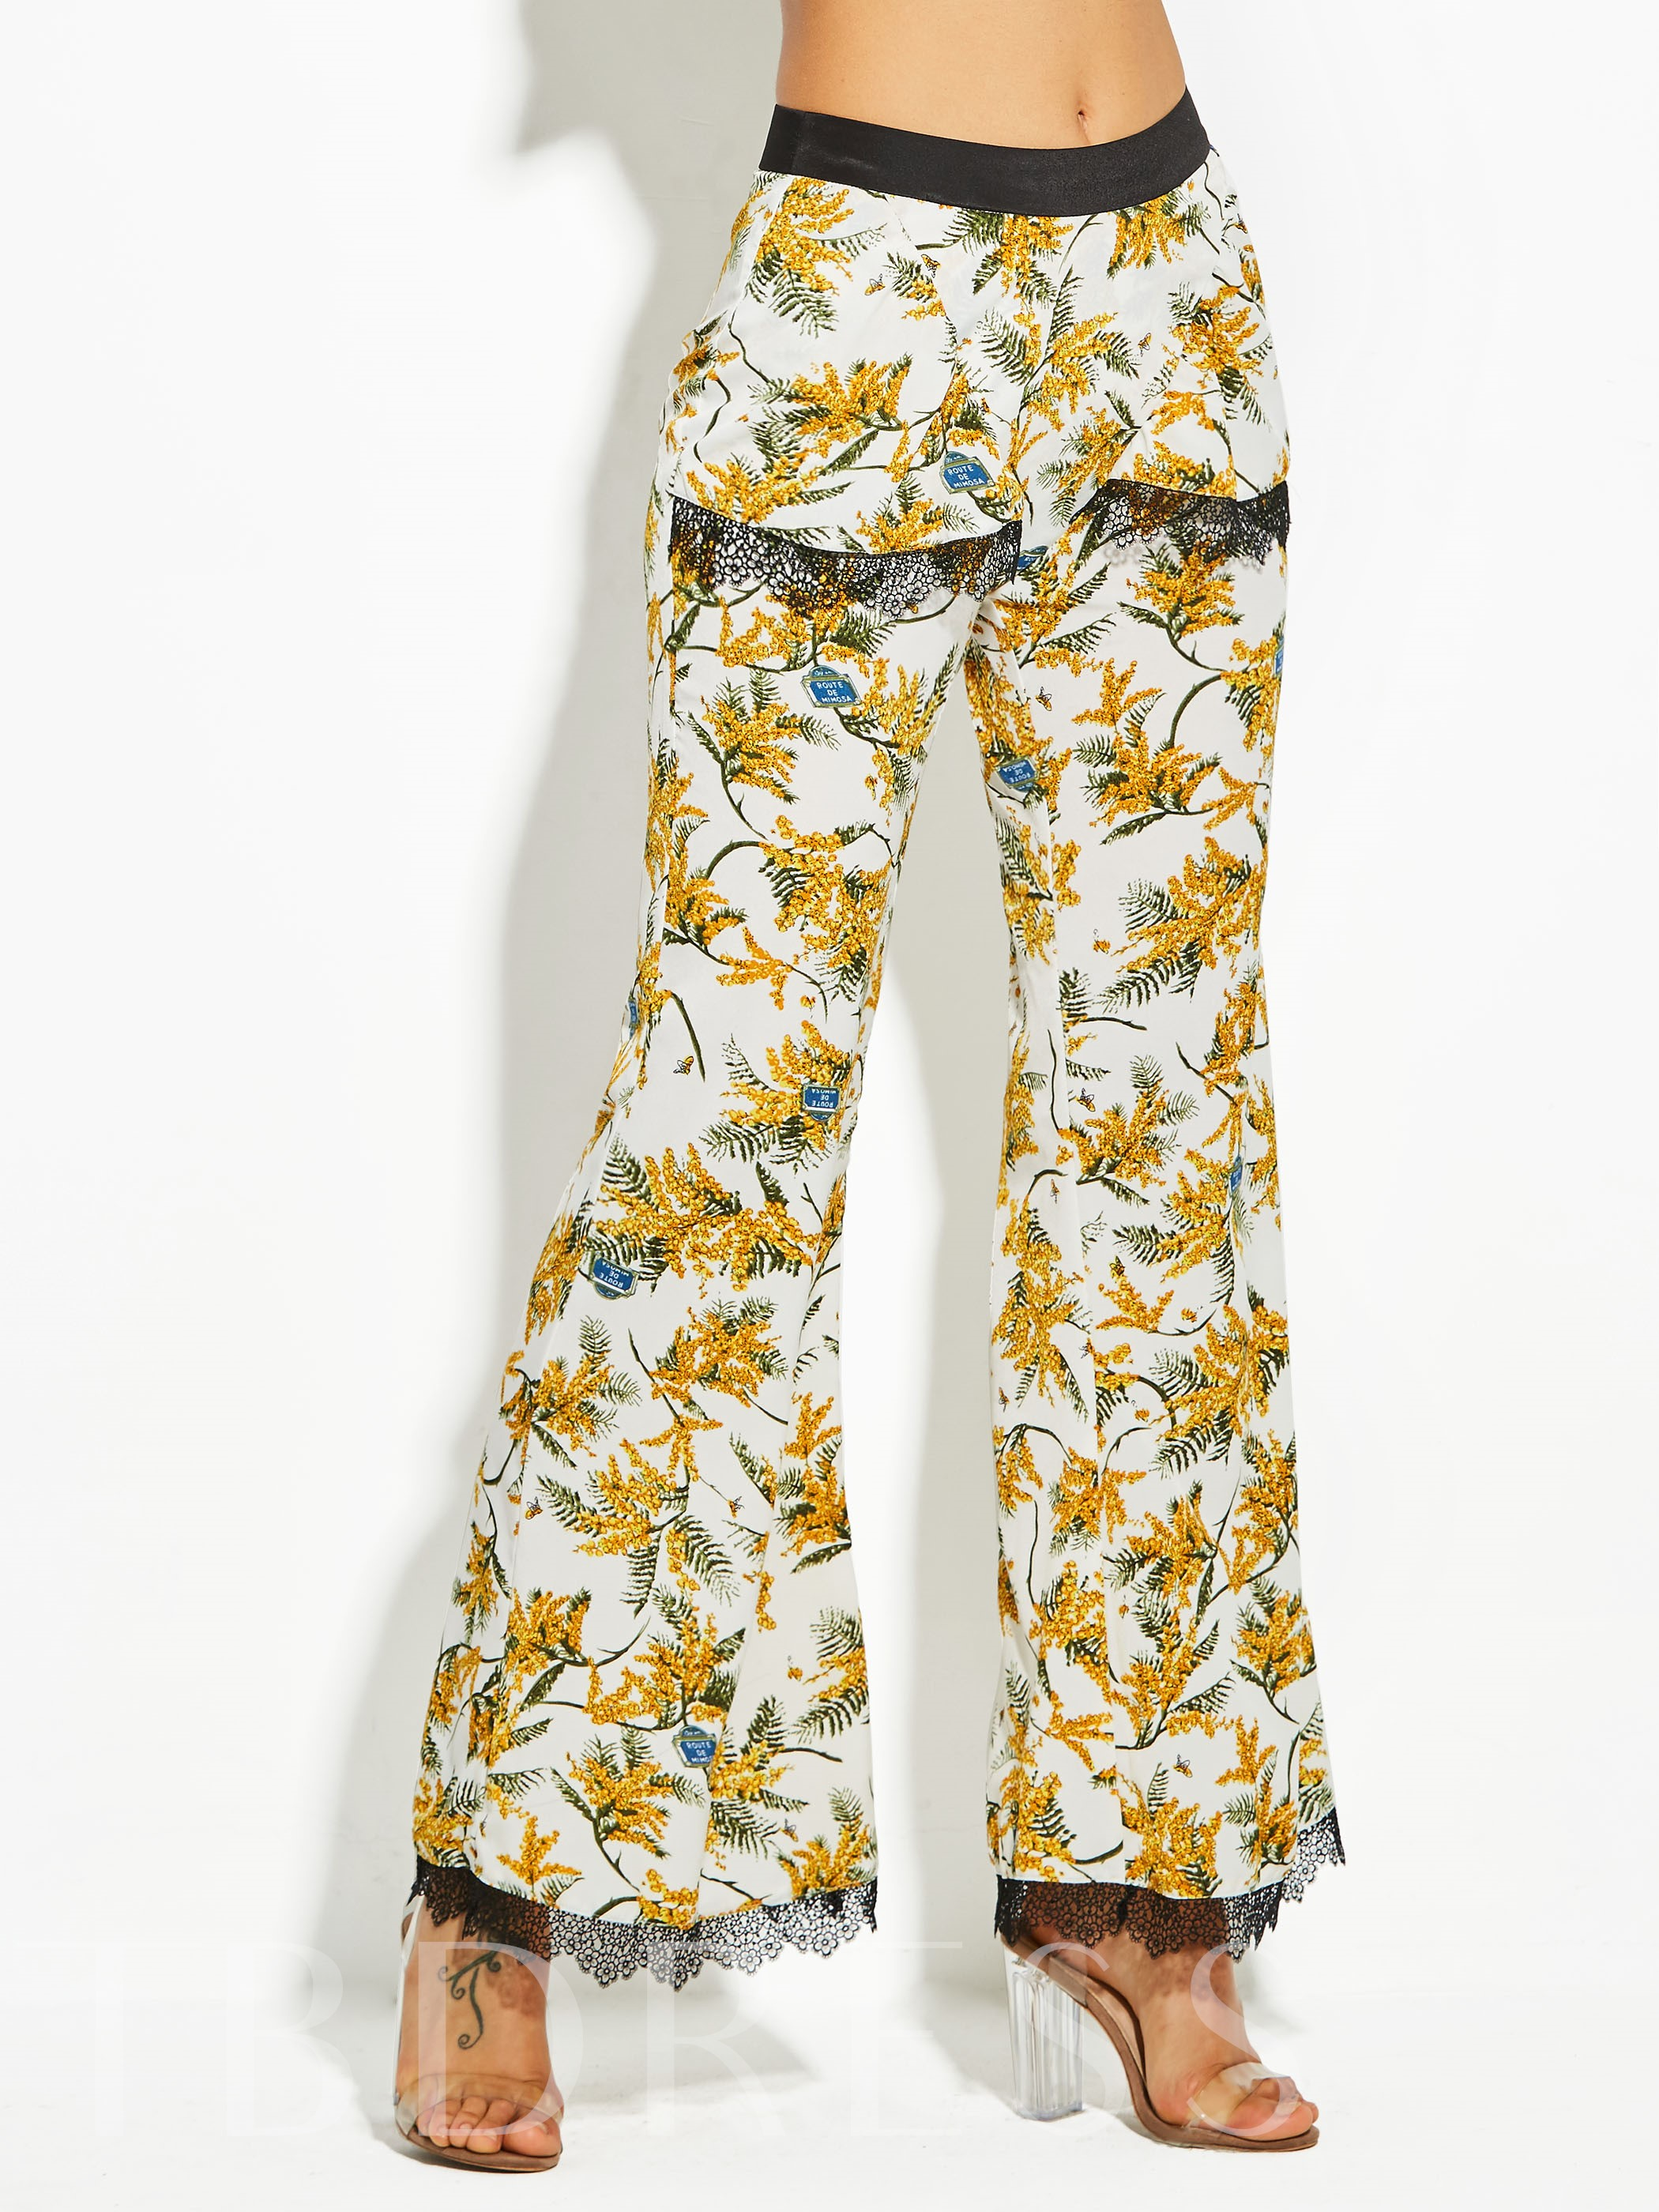 Buy Flower Print Full Length Women's Vacation Bellbottoms, Vintacy, 12938152 for $17.99 in TBDress store